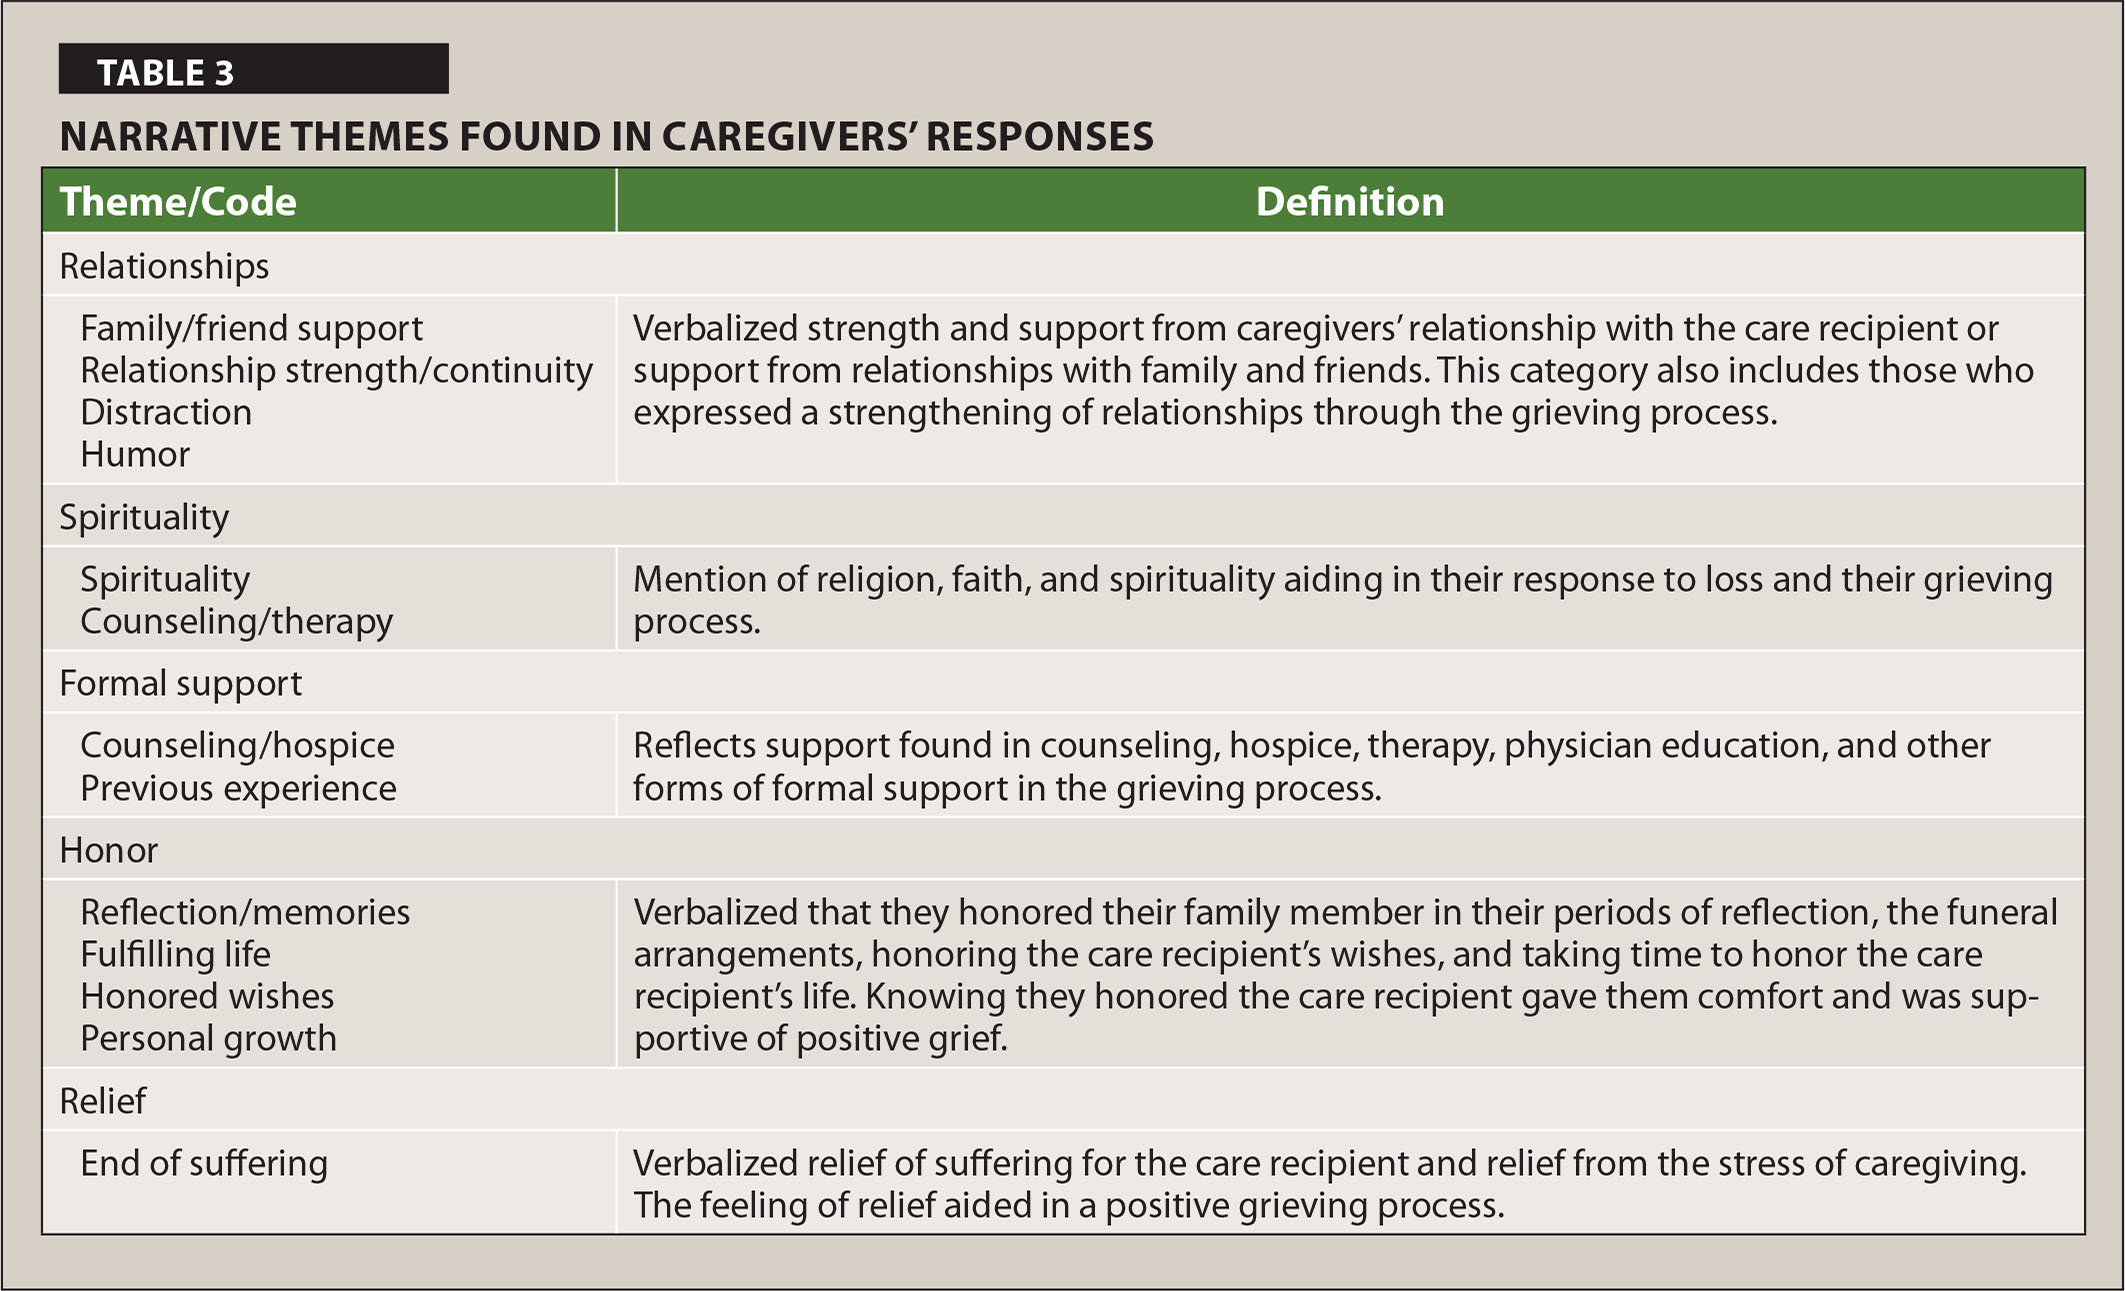 Narrative Themes Found in Caregivers' Responses